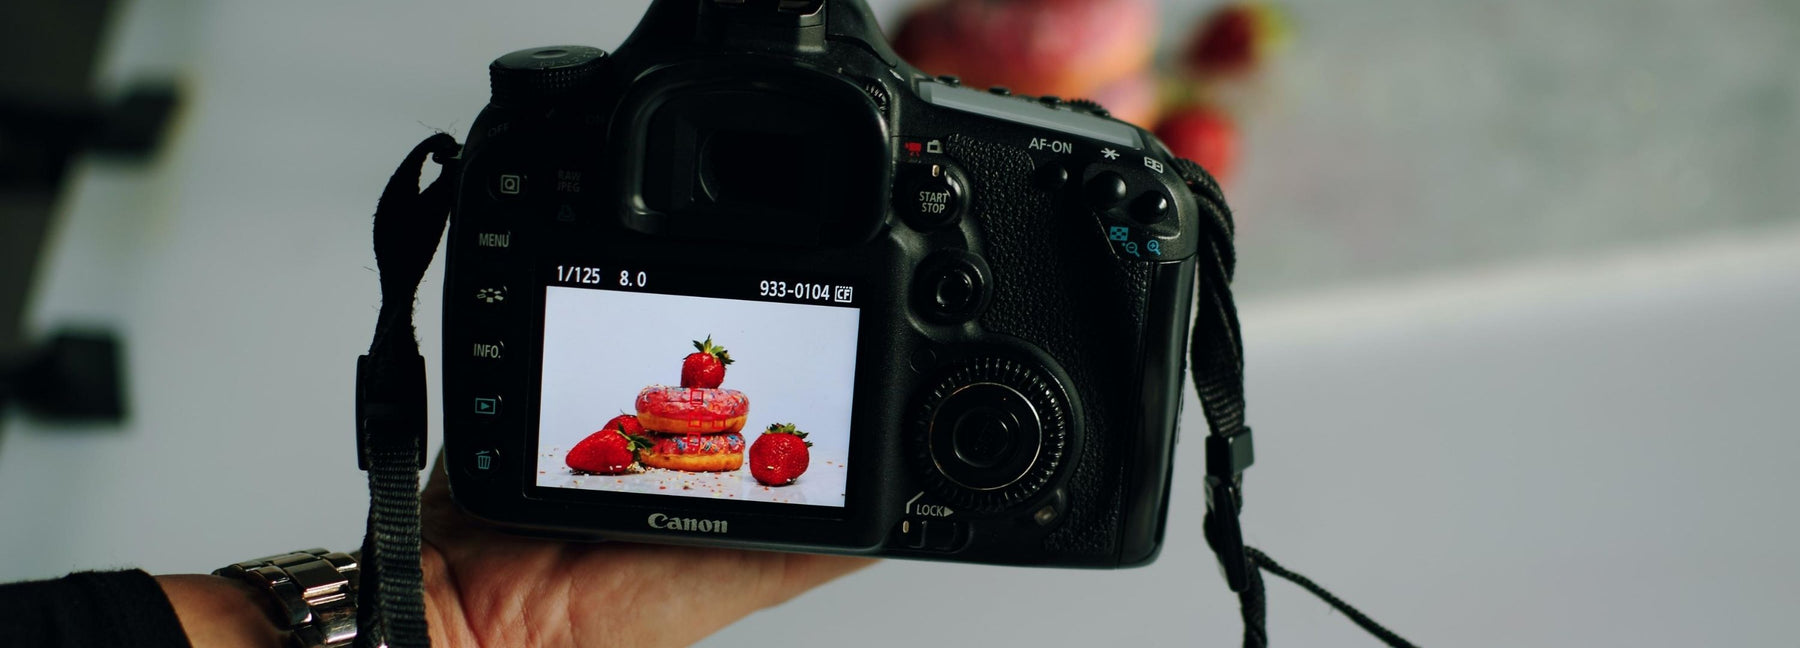 The 5 Most Common Product Photography Mistakes